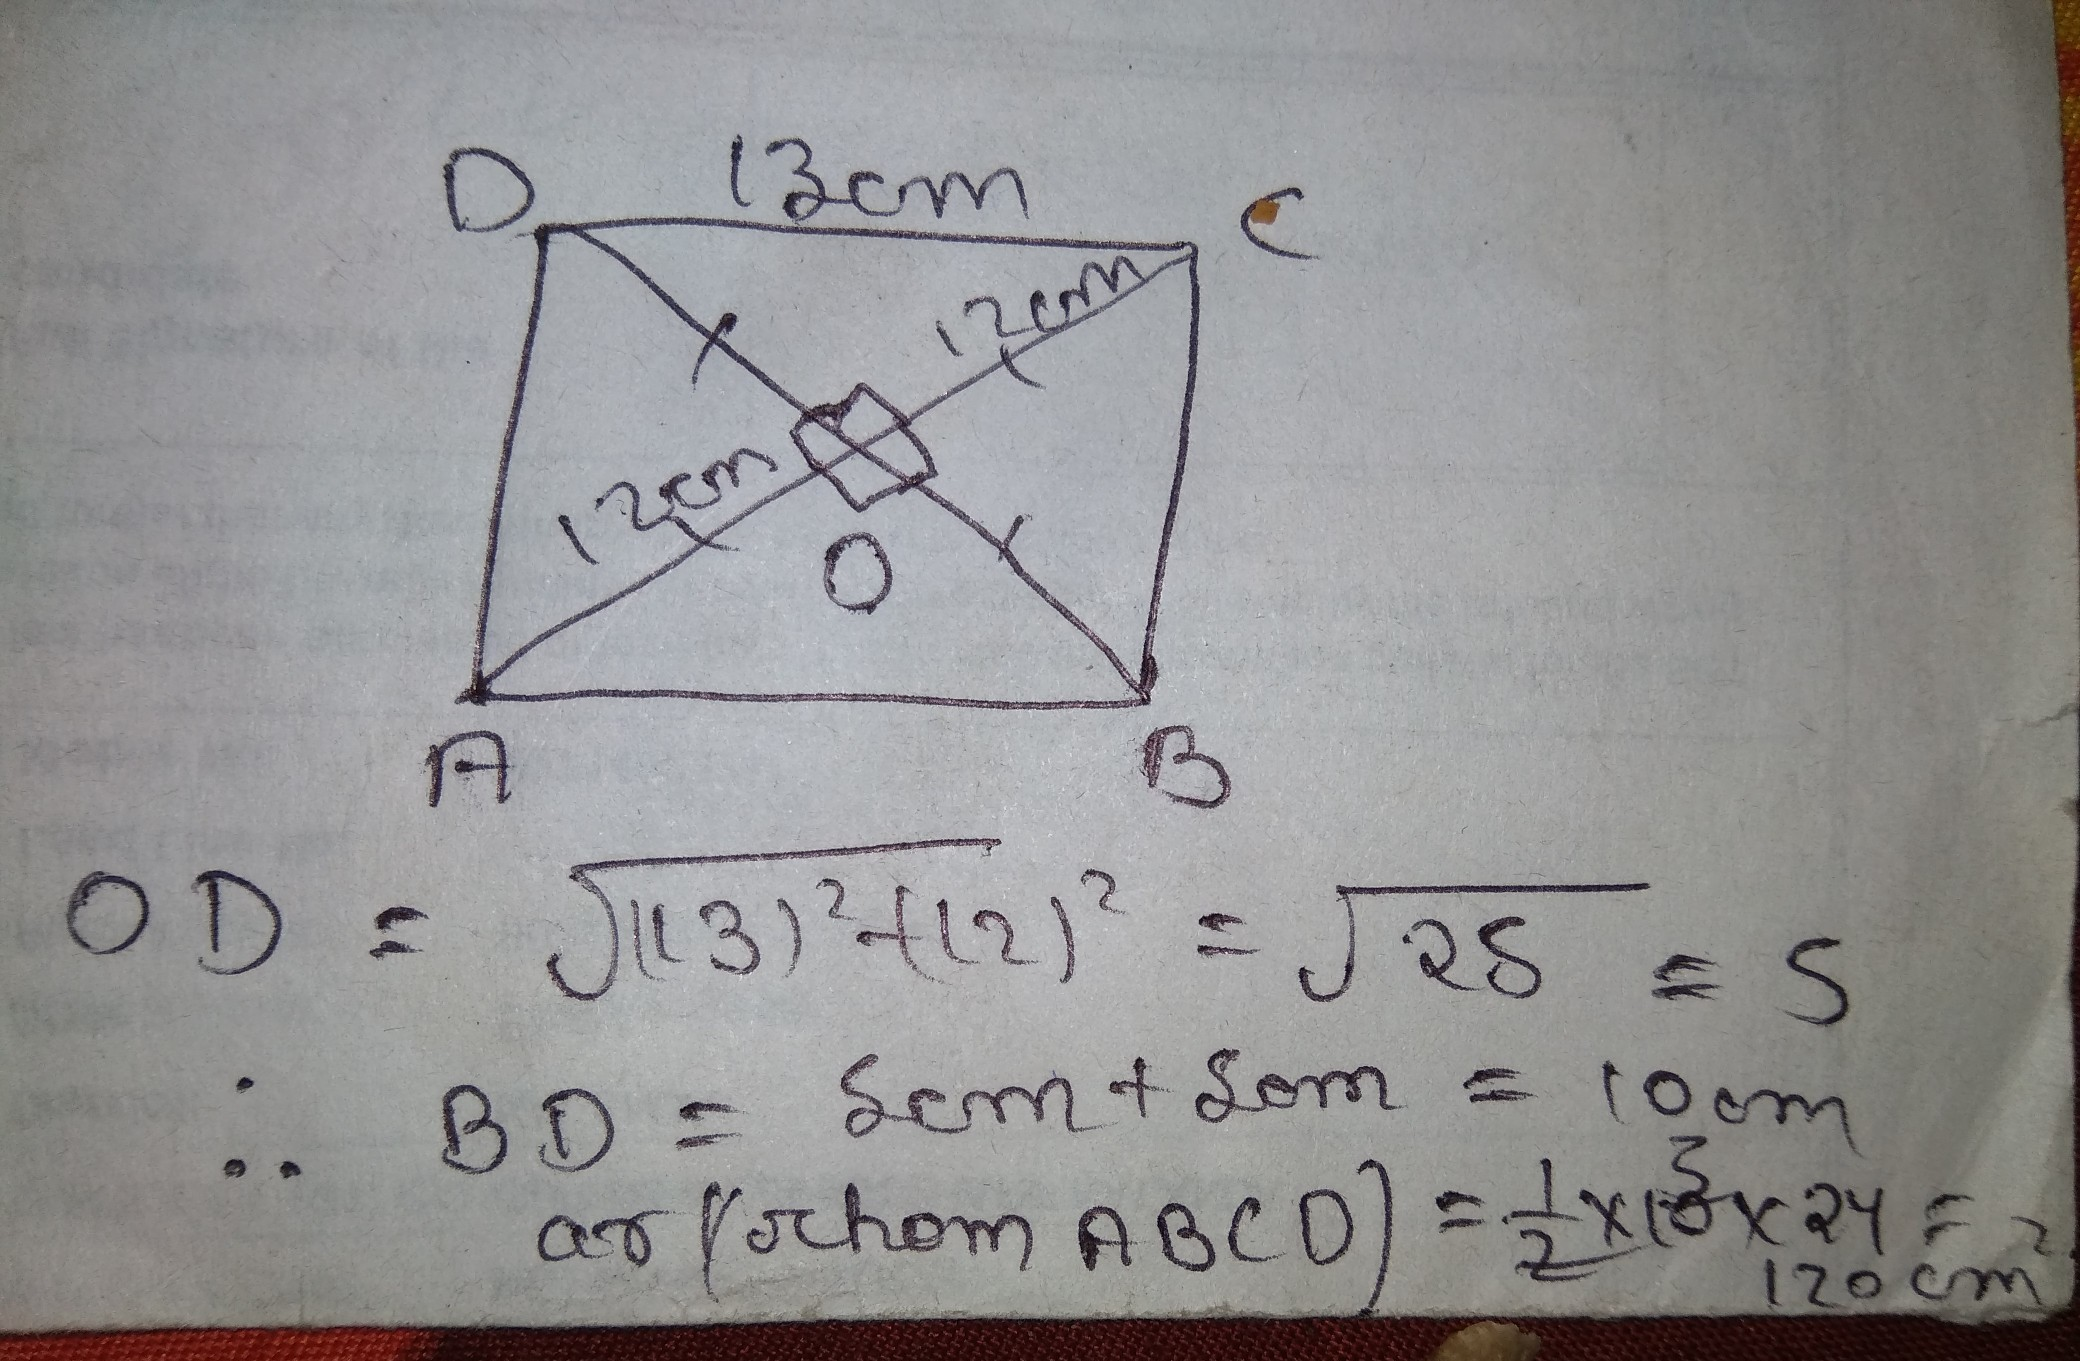 Find The Area Of A Rhombus Having Each Side Equal To 13cm